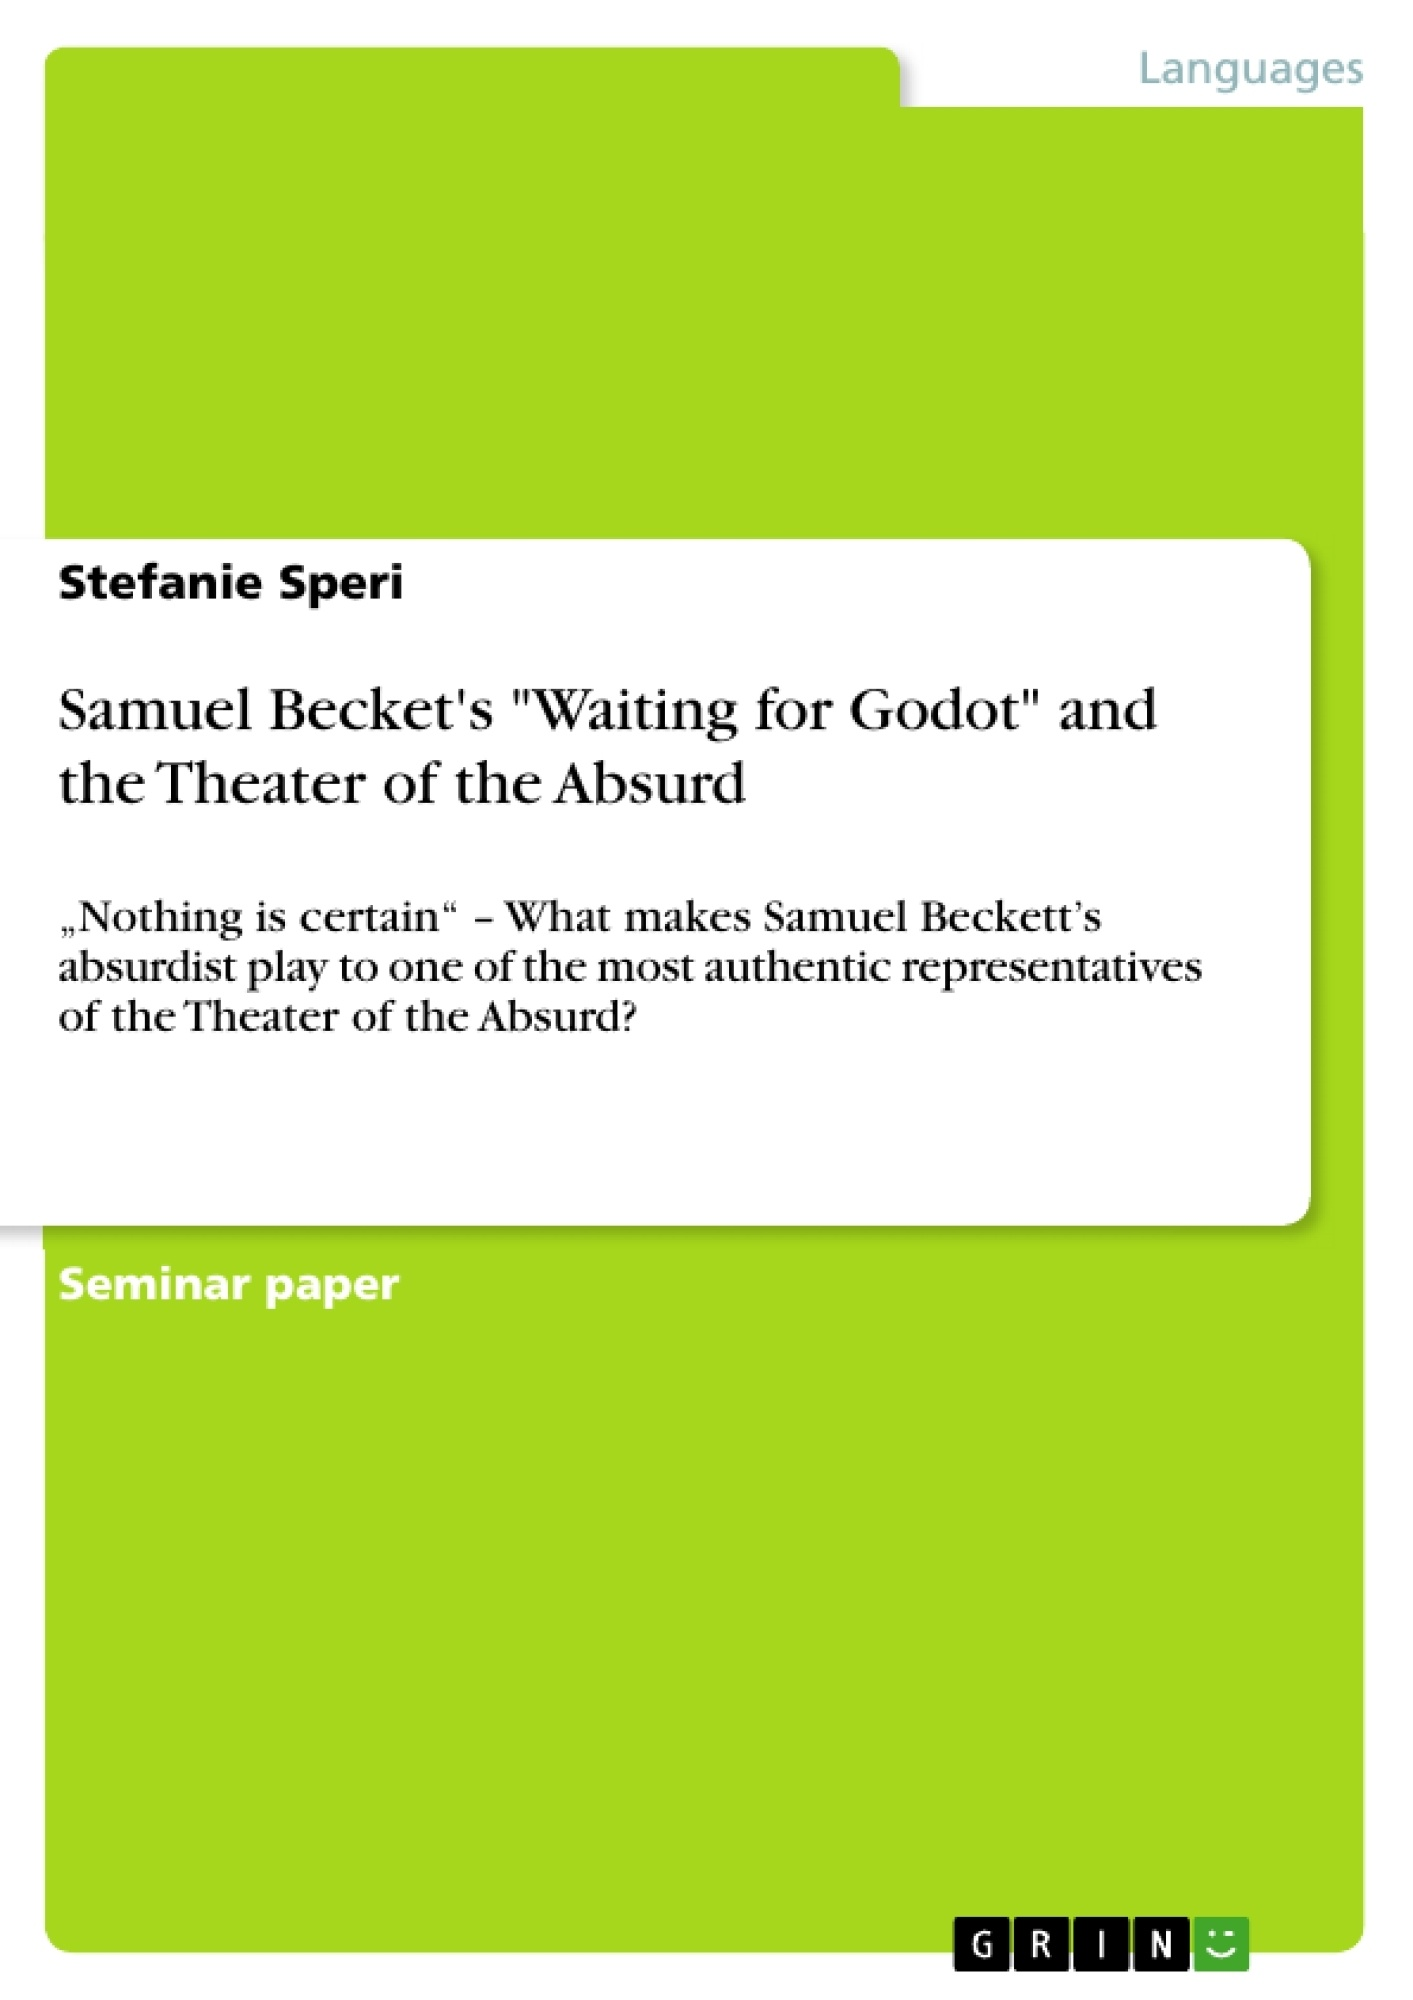 samuel becket s waiting for godot and the theater of the absurd  upload your own papers earn money and win an iphone x